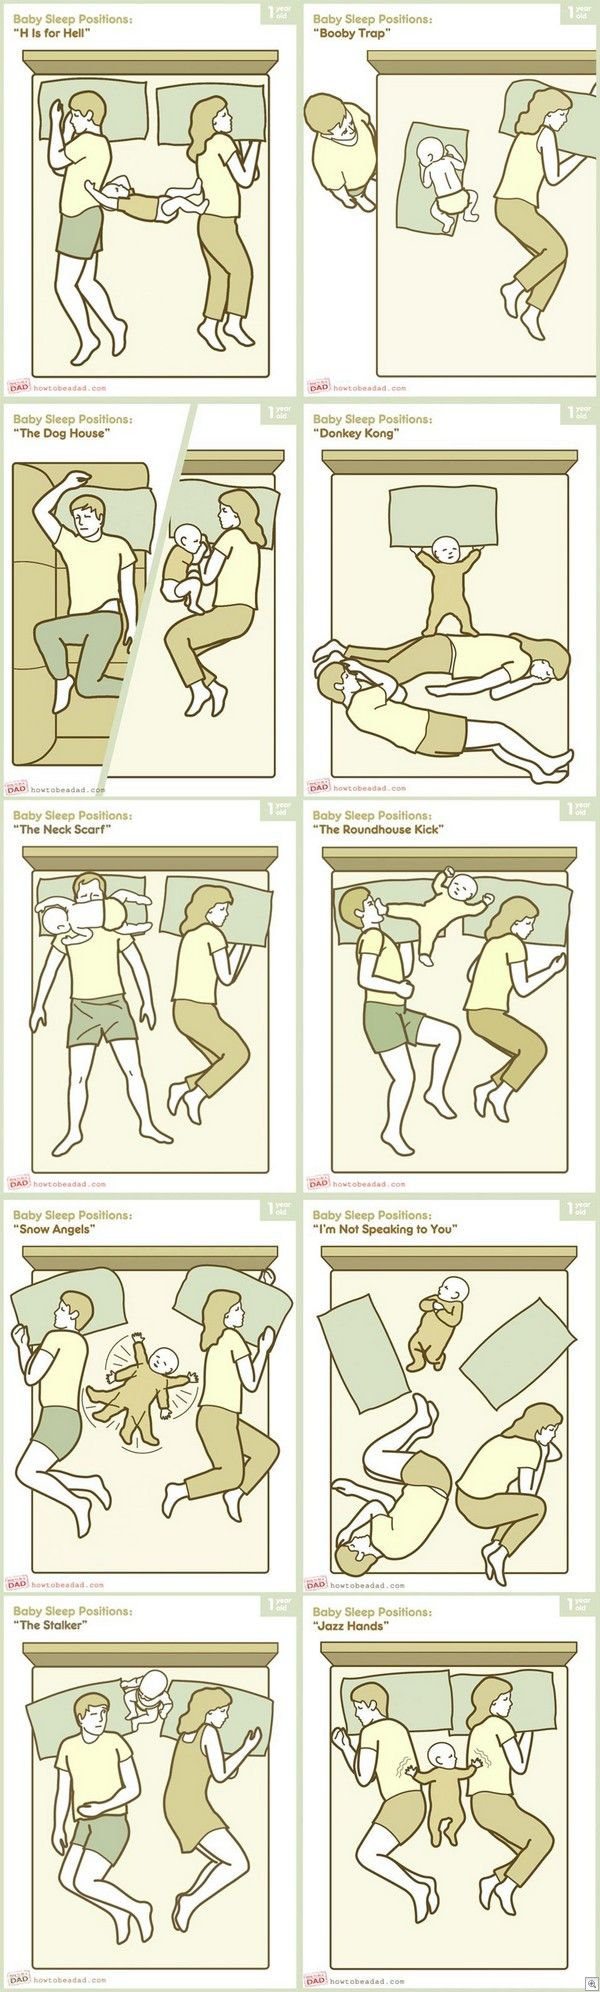 Ugh, first time I've resorted to letting her in our bed and this is very accurate... About that bad day post earlier...